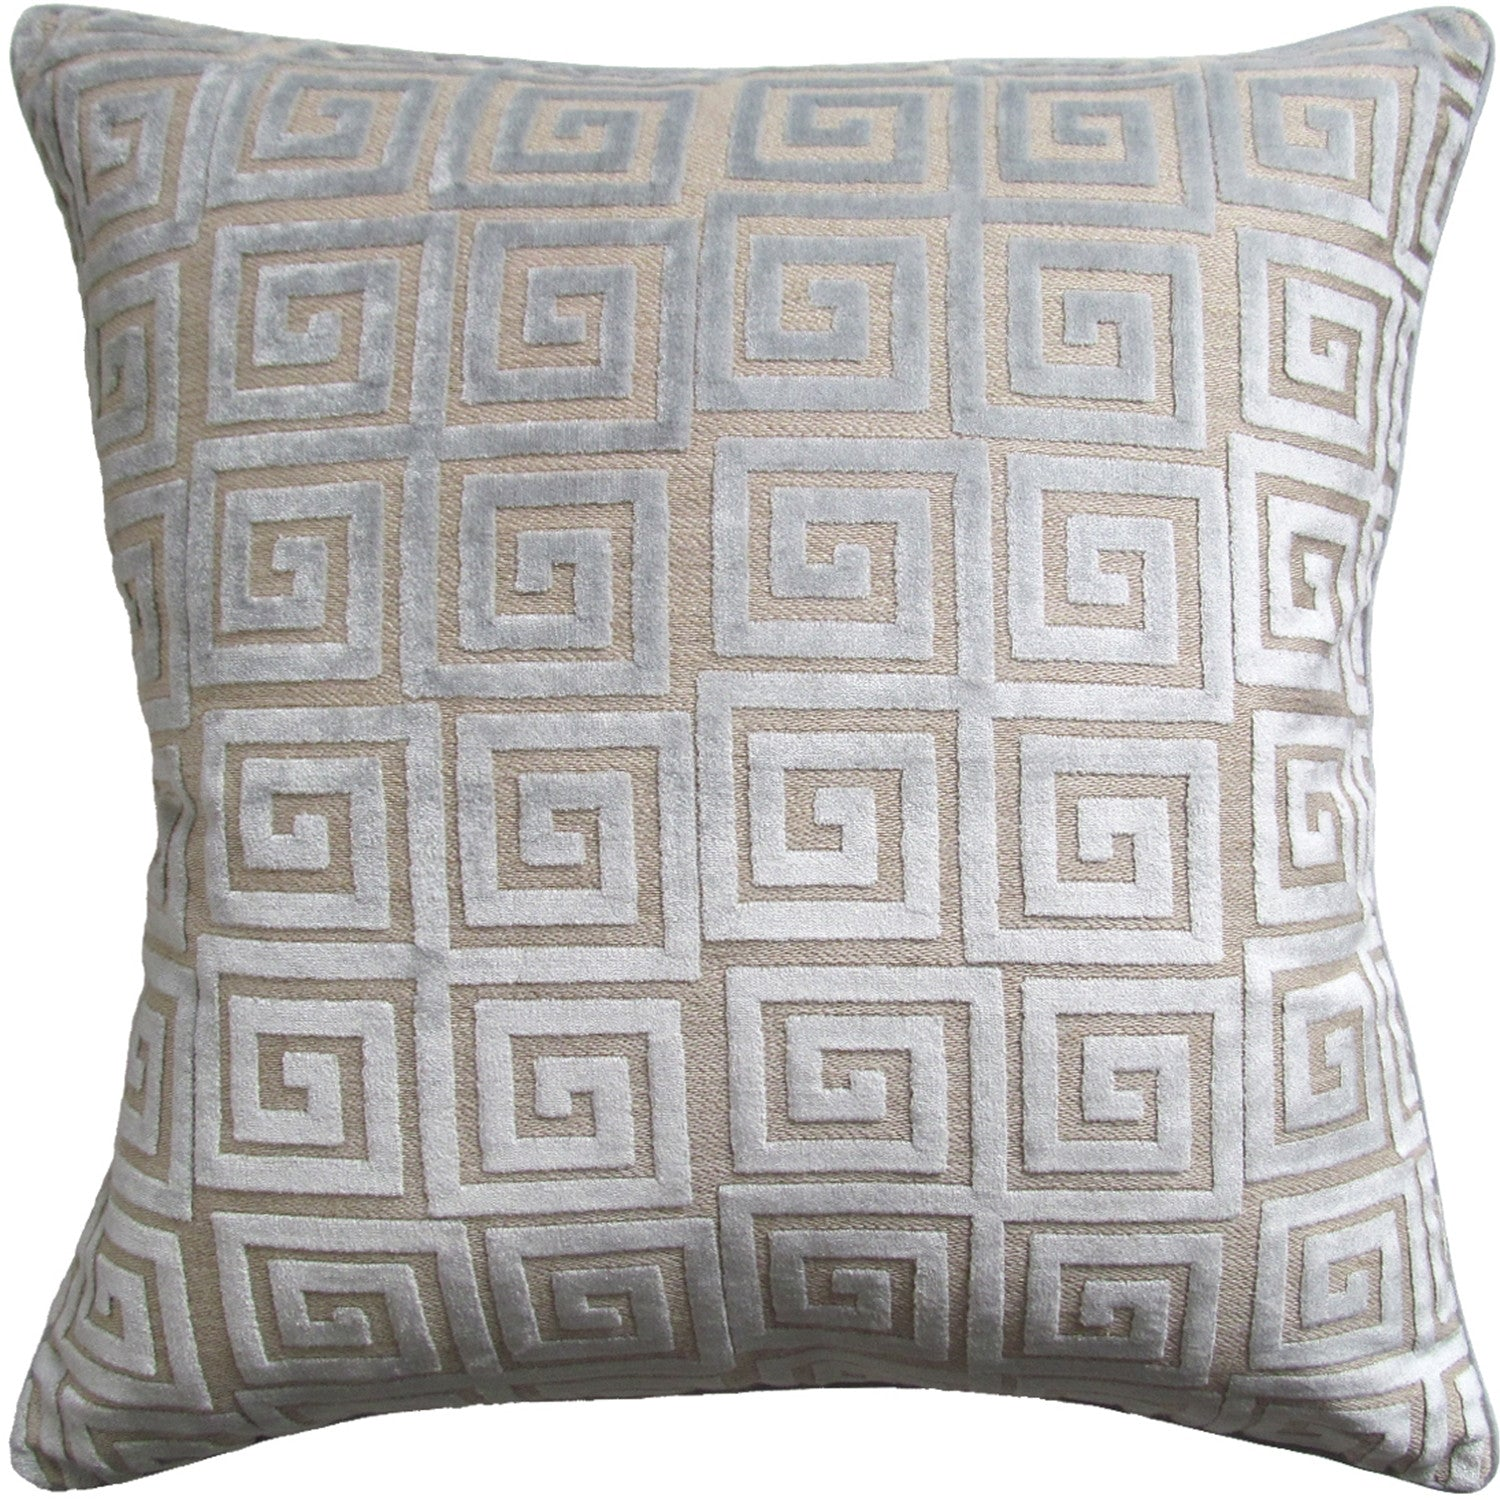 Ryan Studio Athenee Pillow in Grey